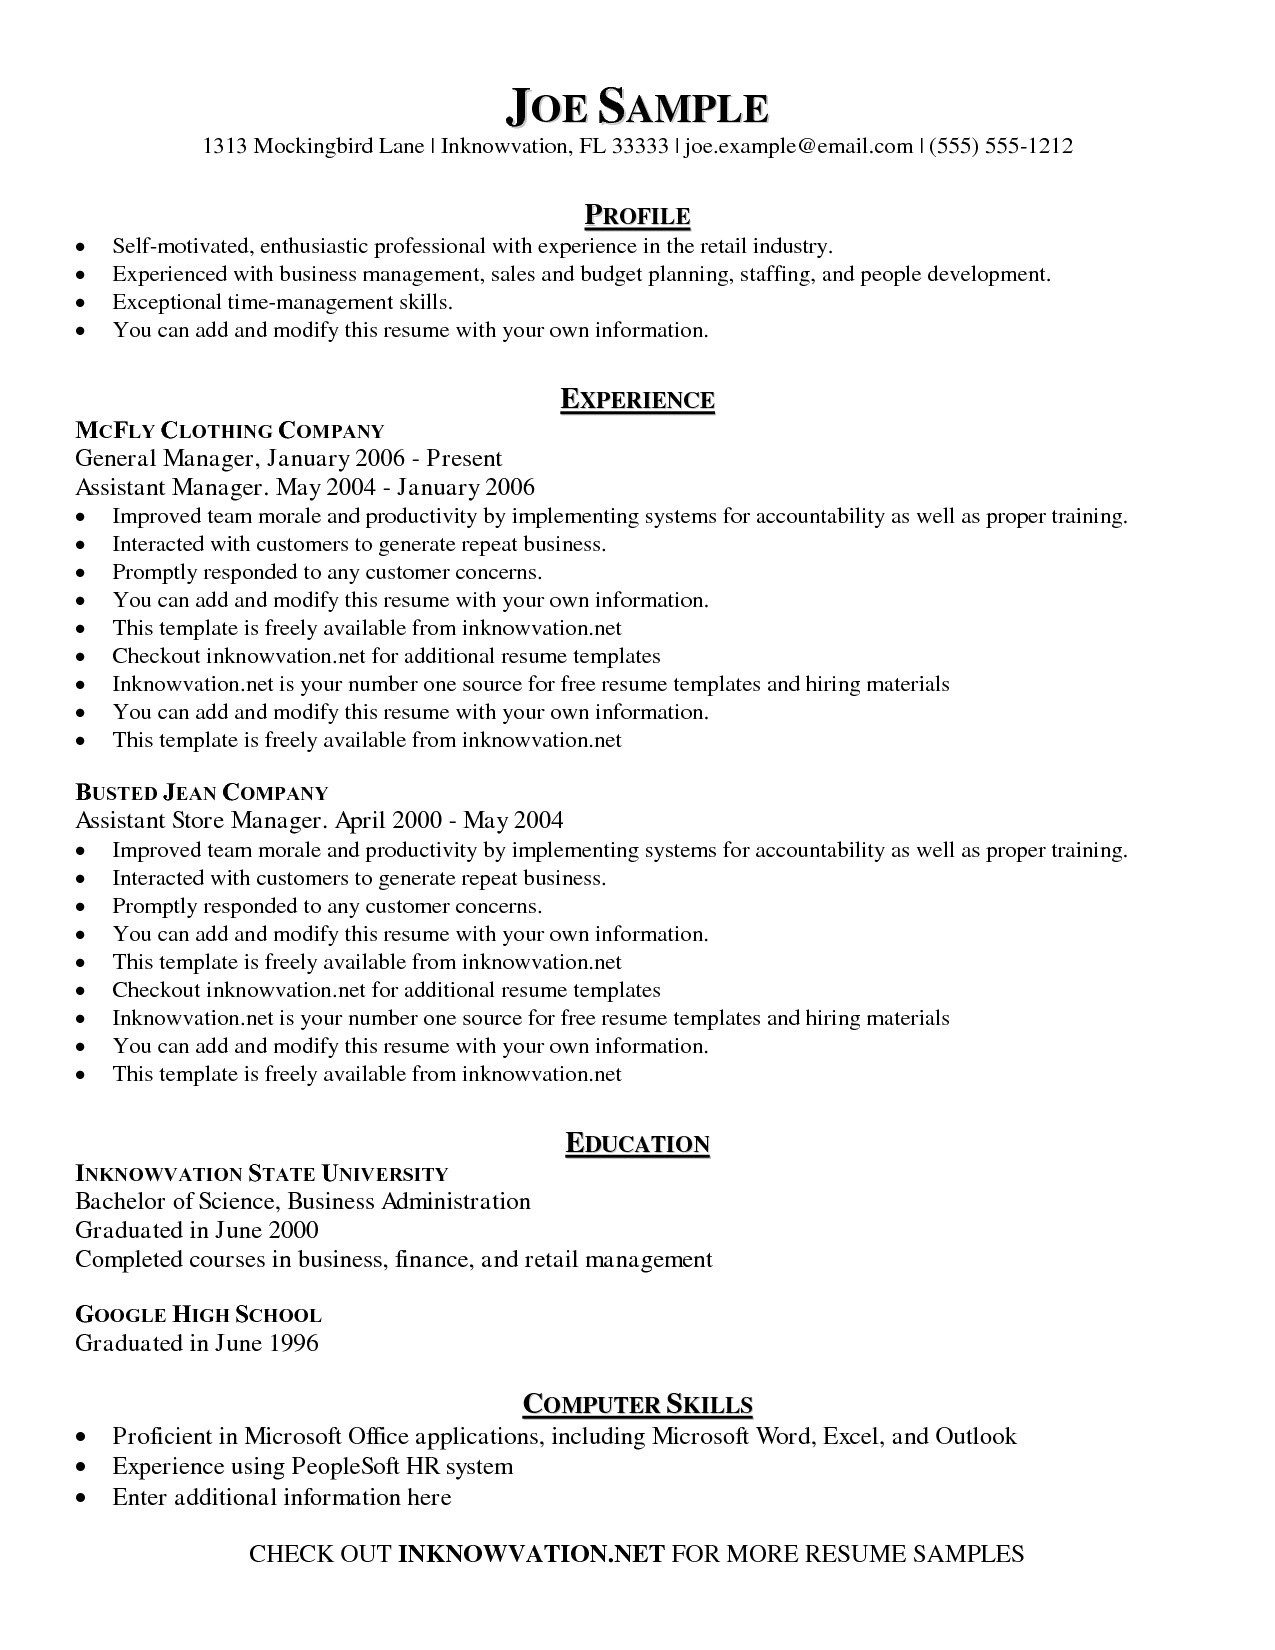 Tax Preparer Resume Samples - 20 Tax Preparer Resume